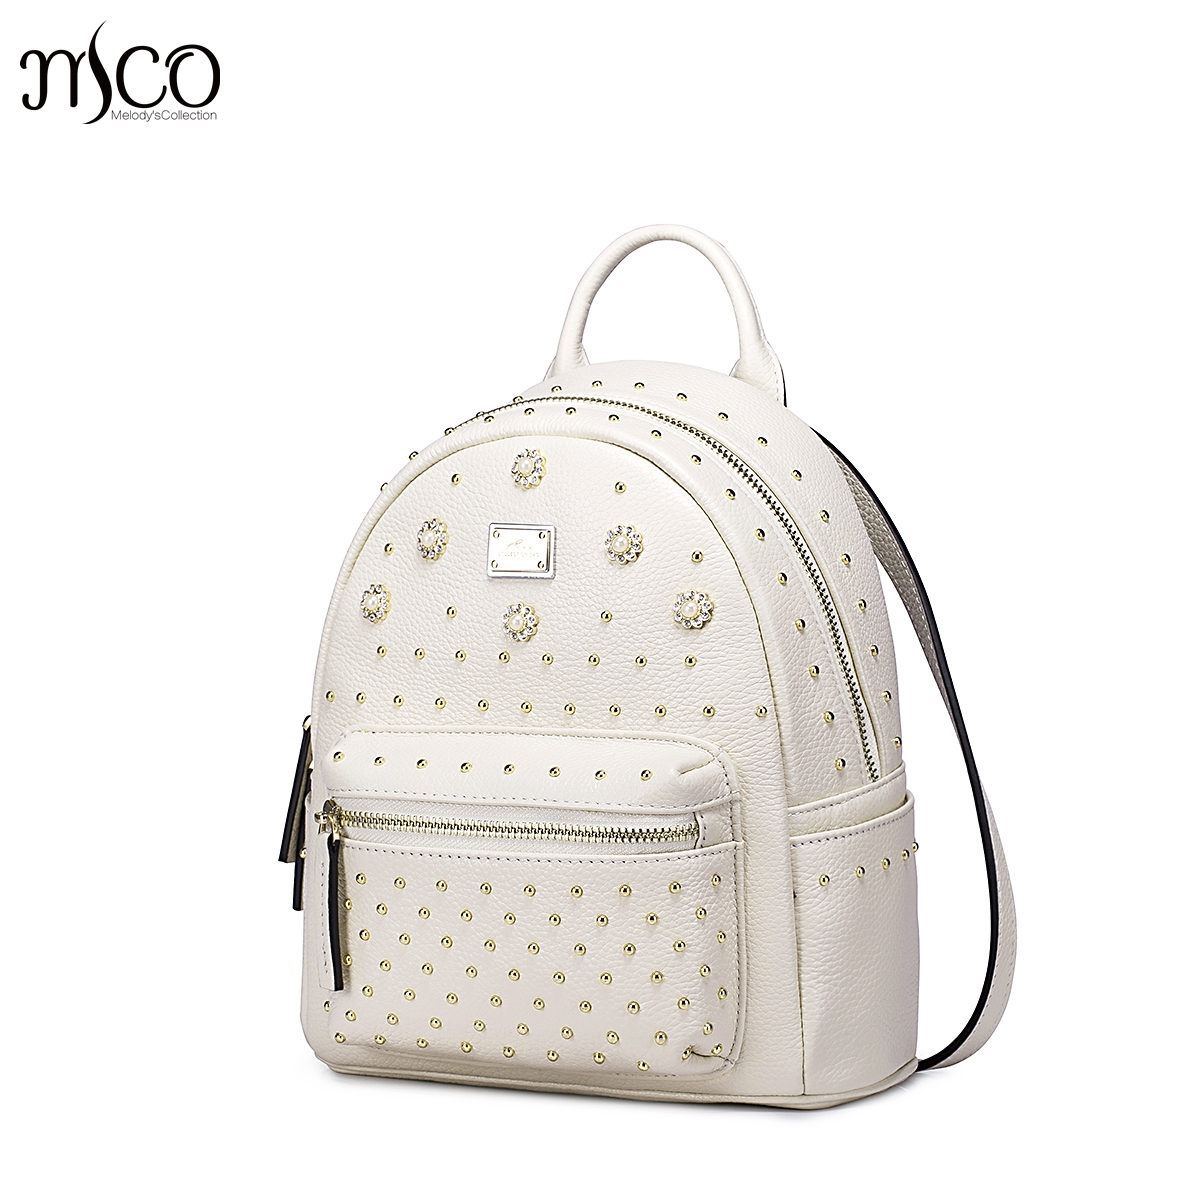 ФОТО Women Genuine Leather Backpack Fashion Rivet Diamond Litchi Grain Head Cowhide Girl Daypack Top-handle Double Shoulder Tote Bag